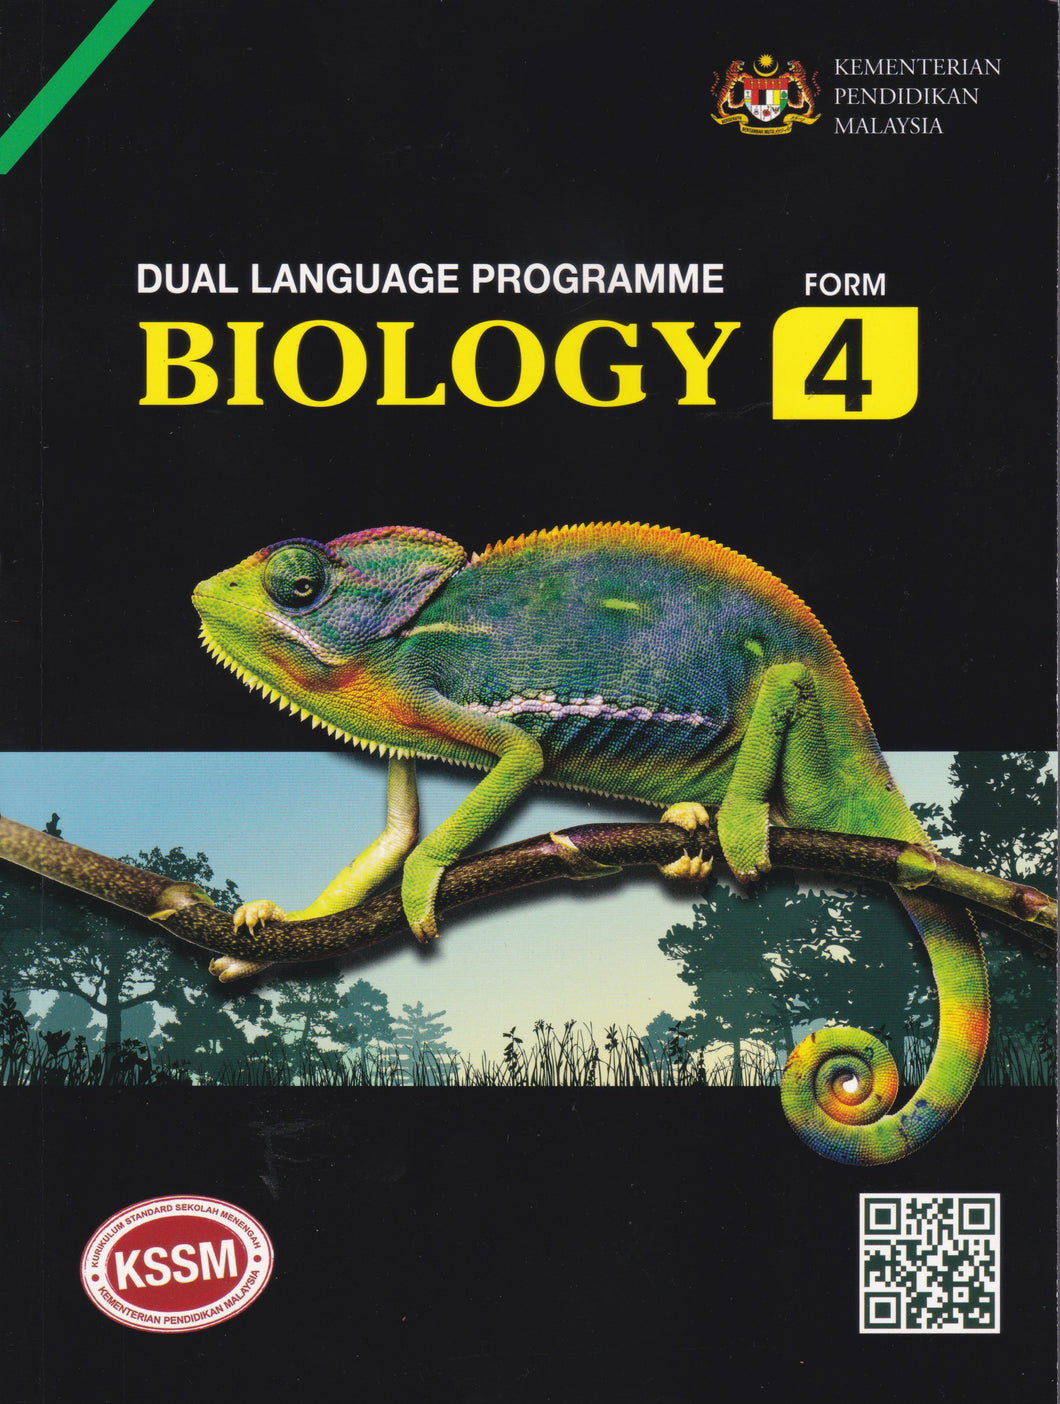 MustRead: Buku Teks Biology Form 4 DLP Textbook